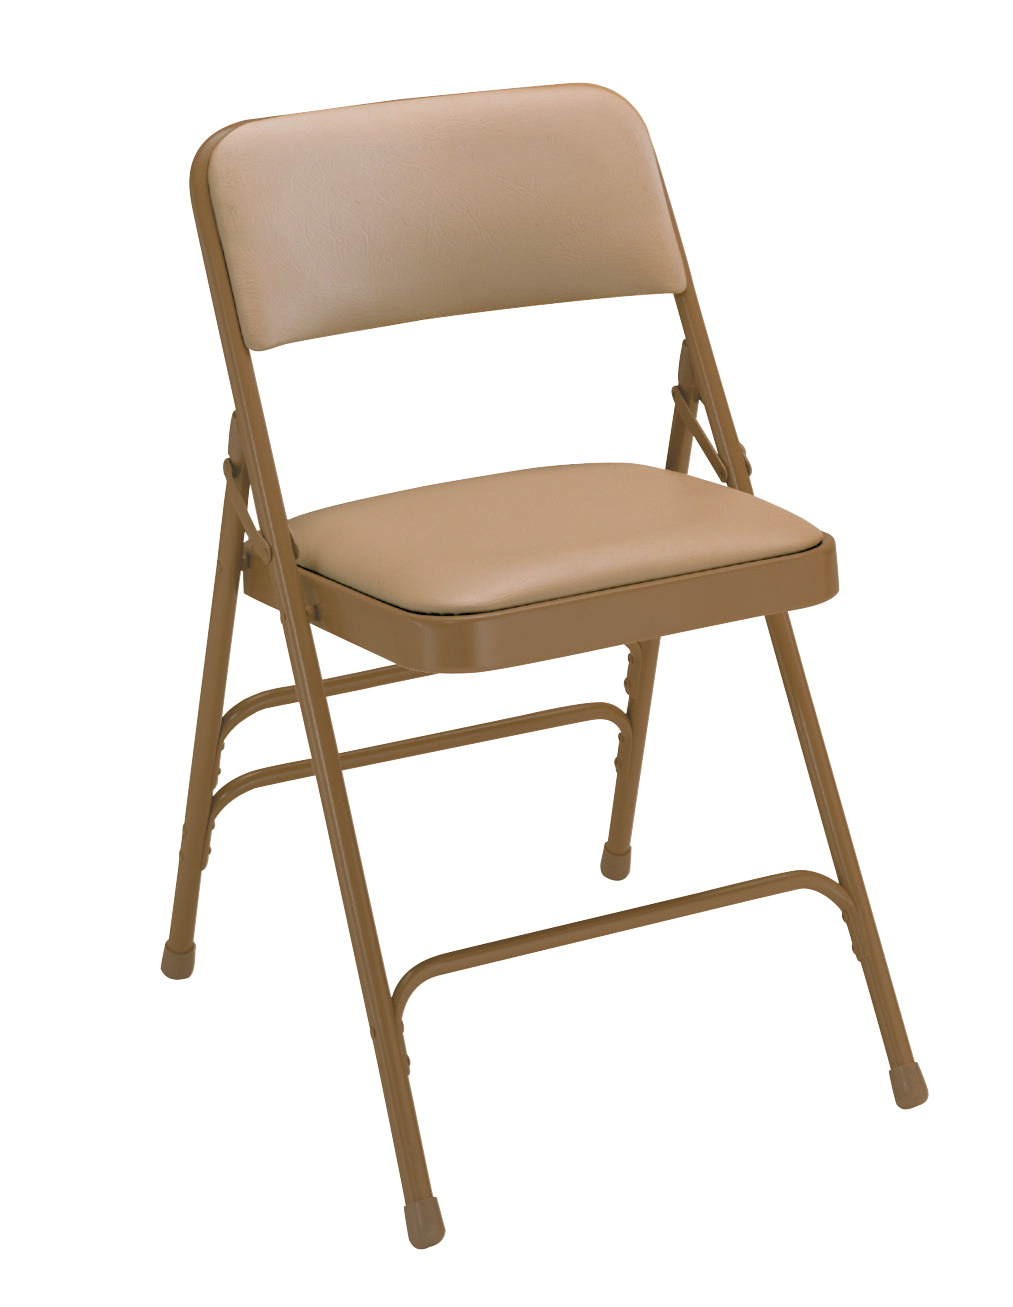 National Public Seating 1300 Series Premium Upholstered Vinyl Folding Chair, 17-3/4 Inch Seat, Various Options